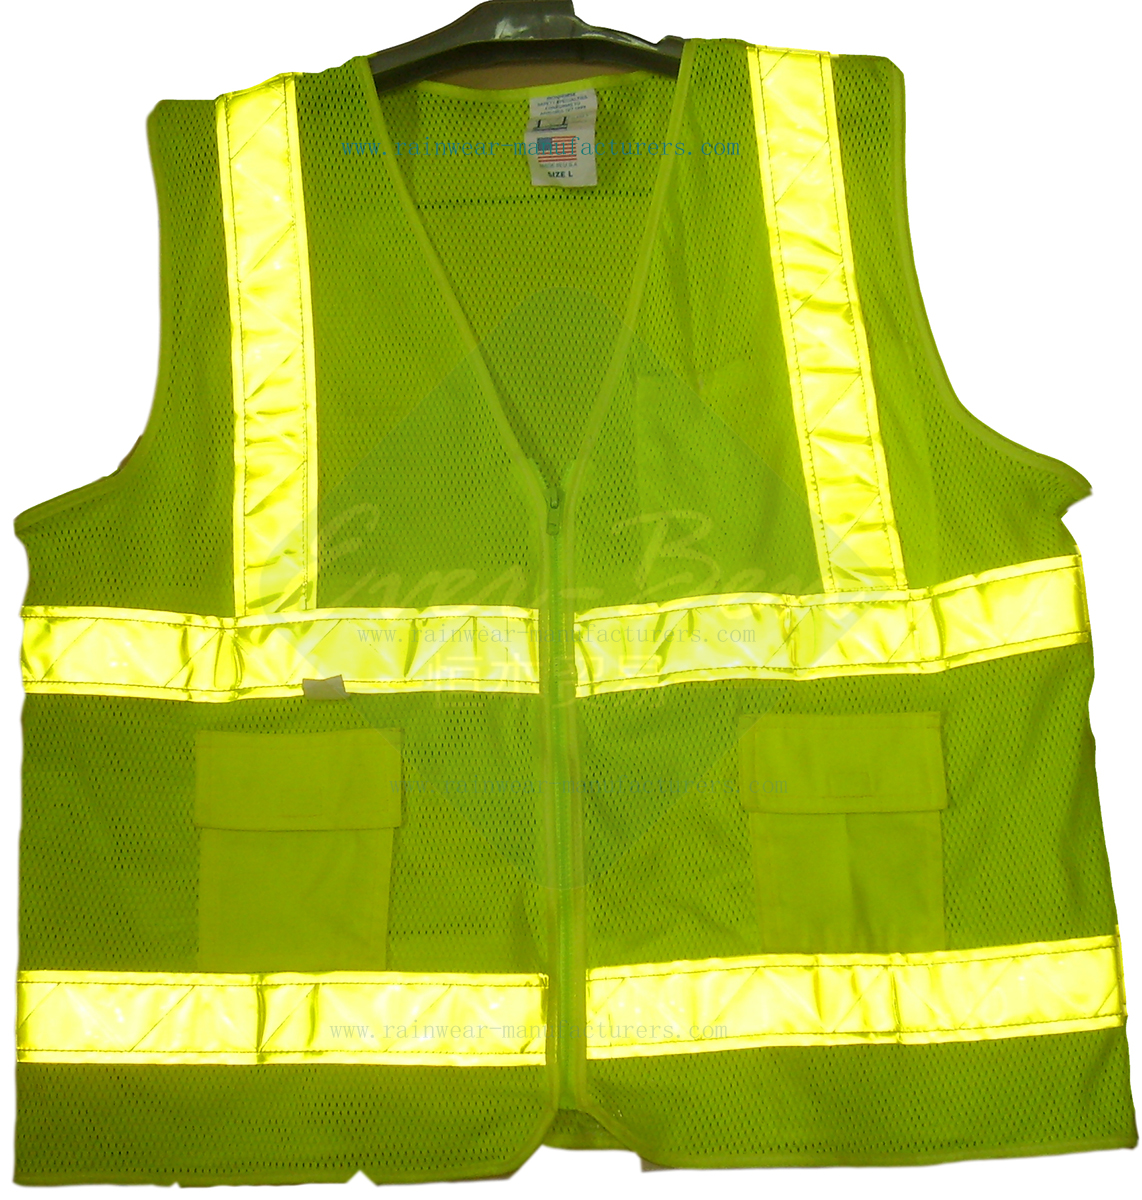 safety work vest with pockets-luminous cycling jacket supplier